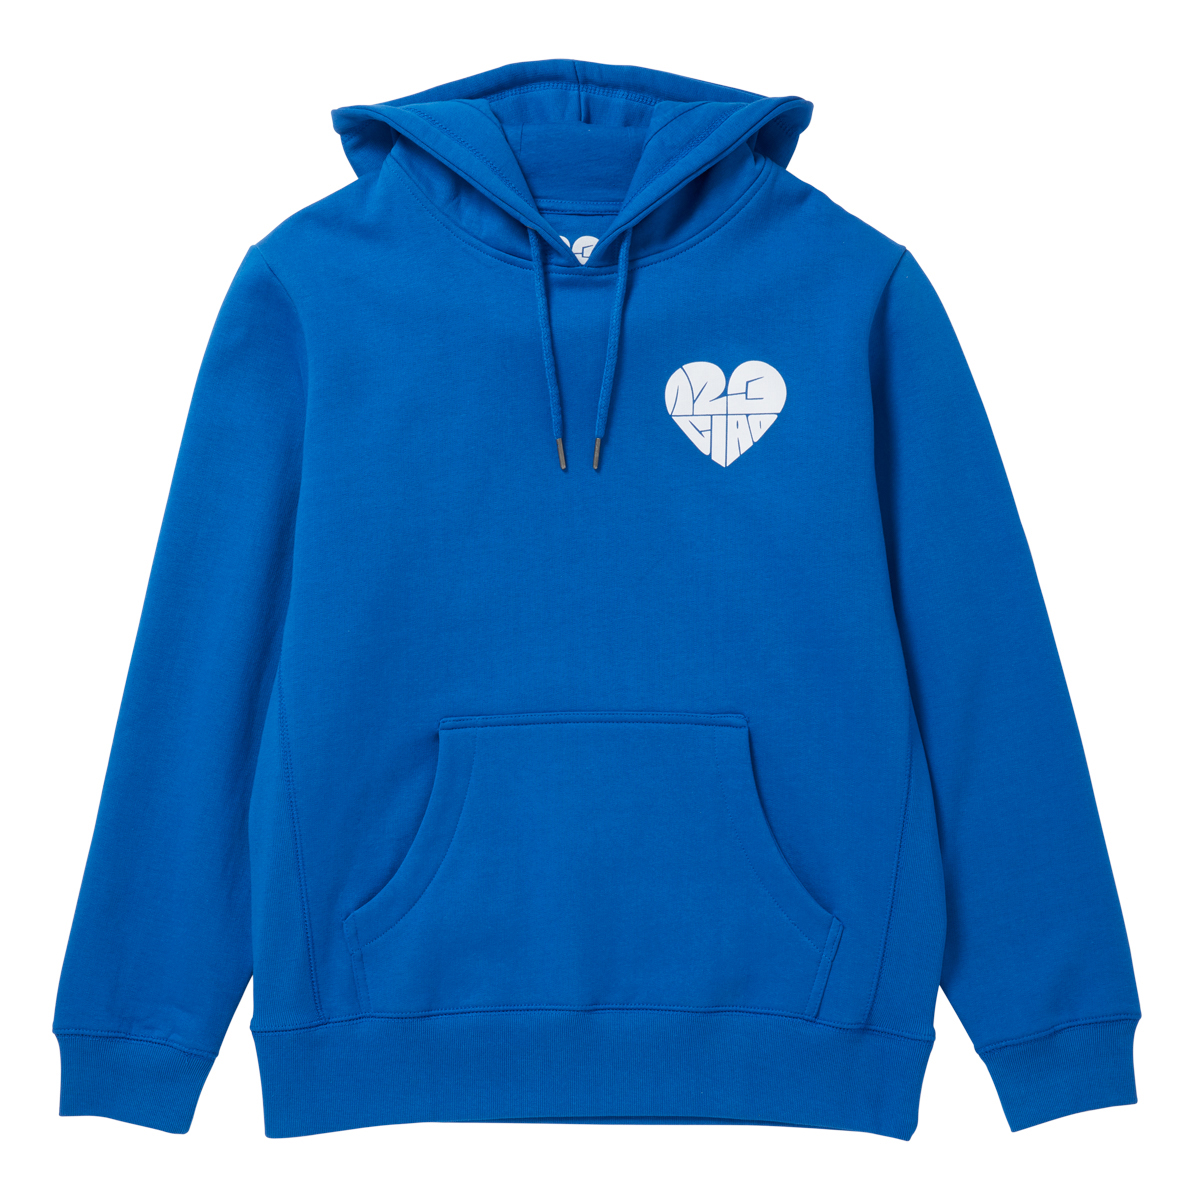 1,2,3 Ciao Hoodie - Blue with White Logo